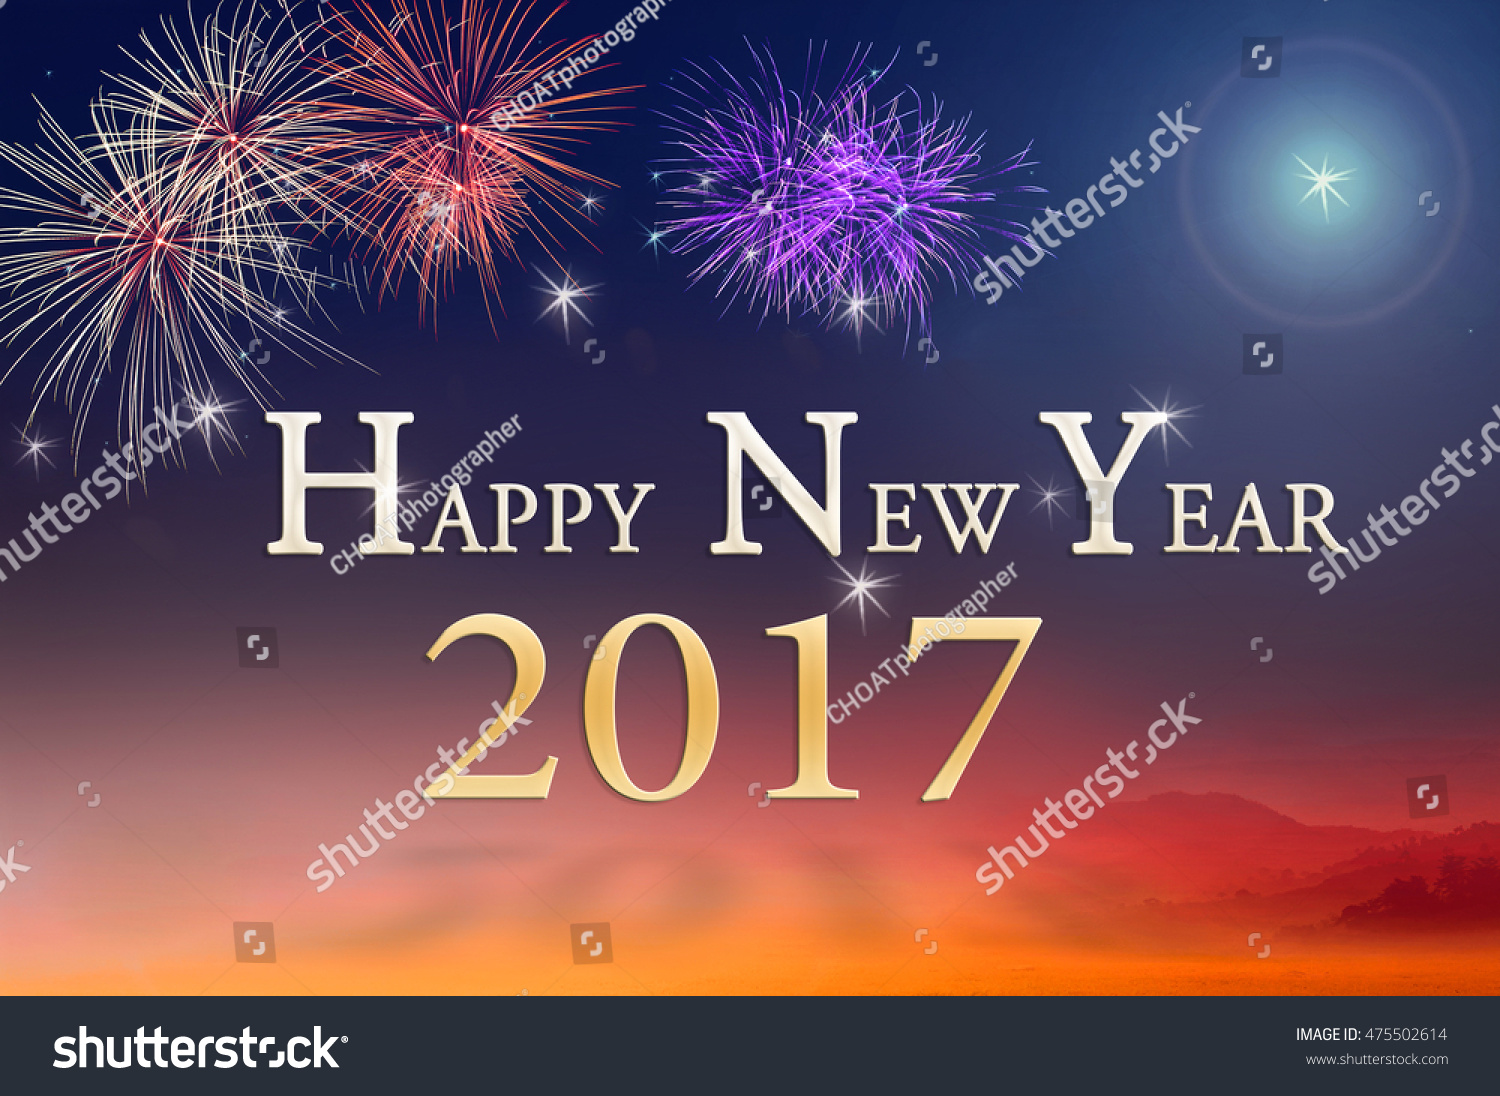 text for happy new year 2017 over fireworks on beautiful nature night background